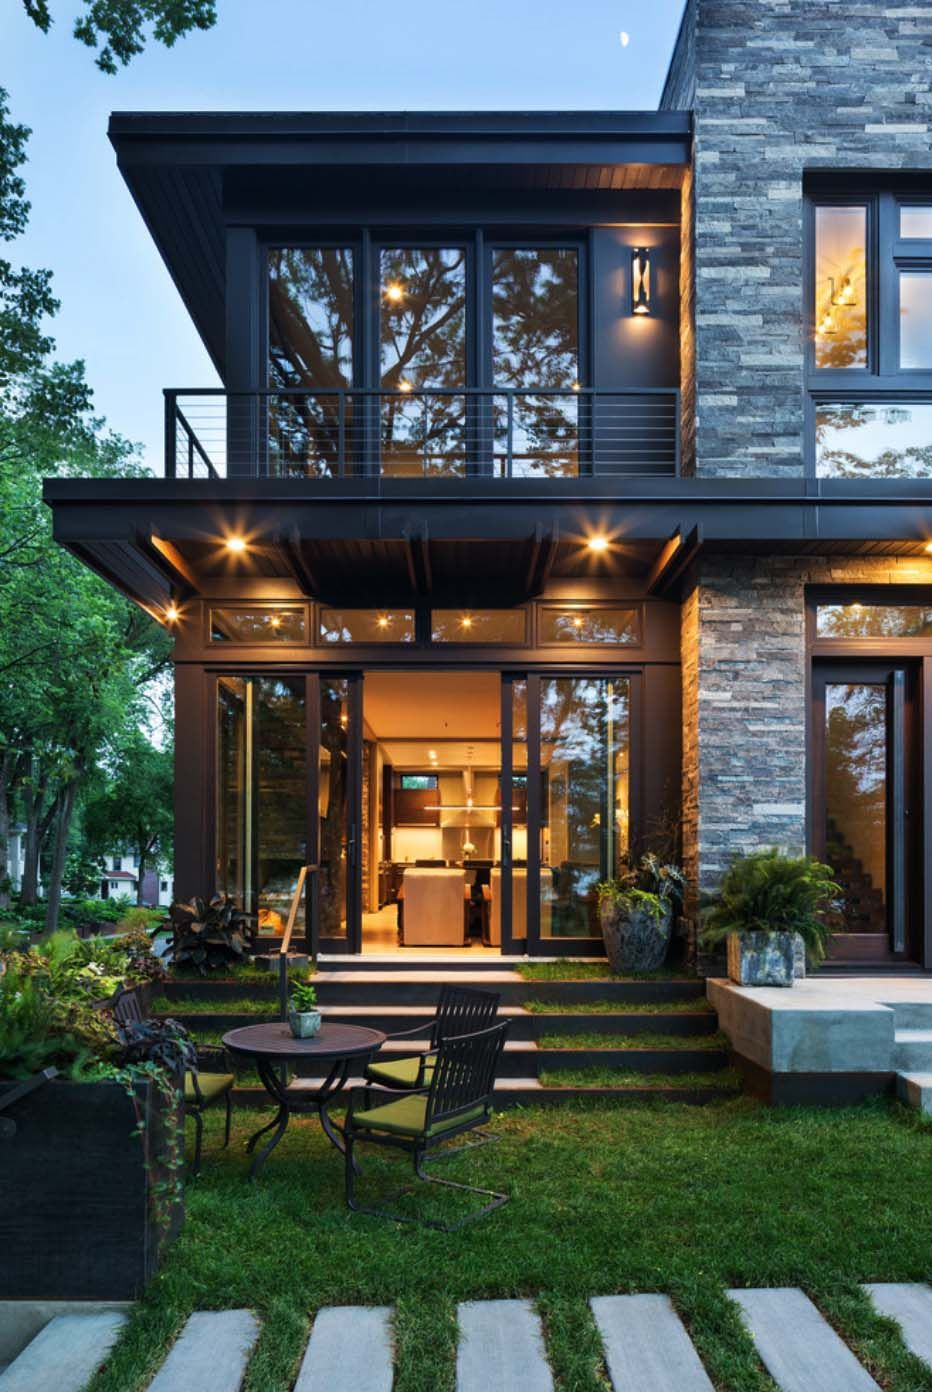 Dark frames and rock ccm also idyllic contemporary residence with privileged views of lake calhoun rh pinterest